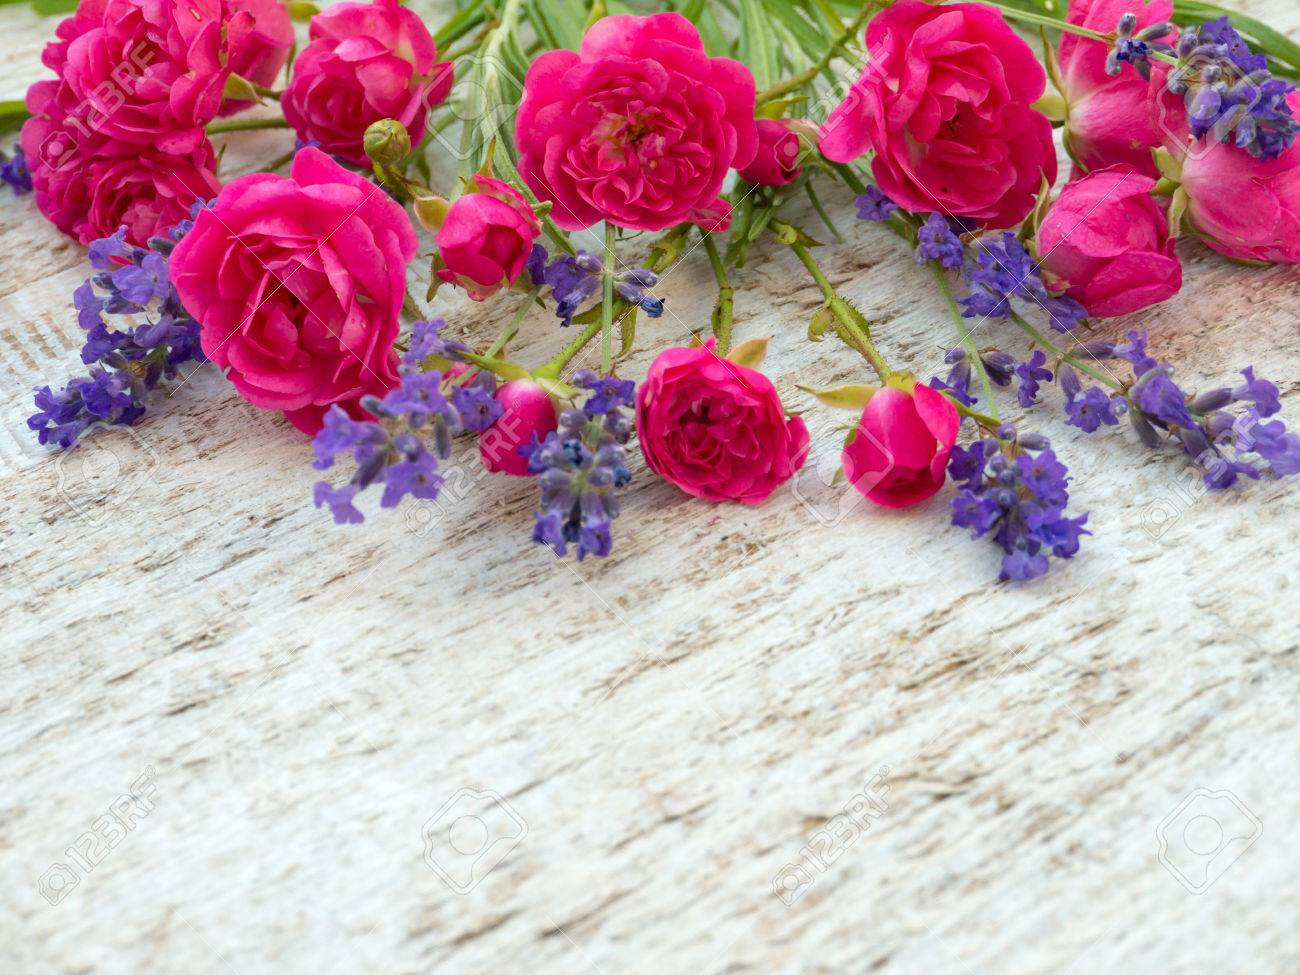 Small Deep Pink Roses And Provence Lavender Bouquet On The Rough Stock Photo Picture And Royalty Free Image Image 48208471